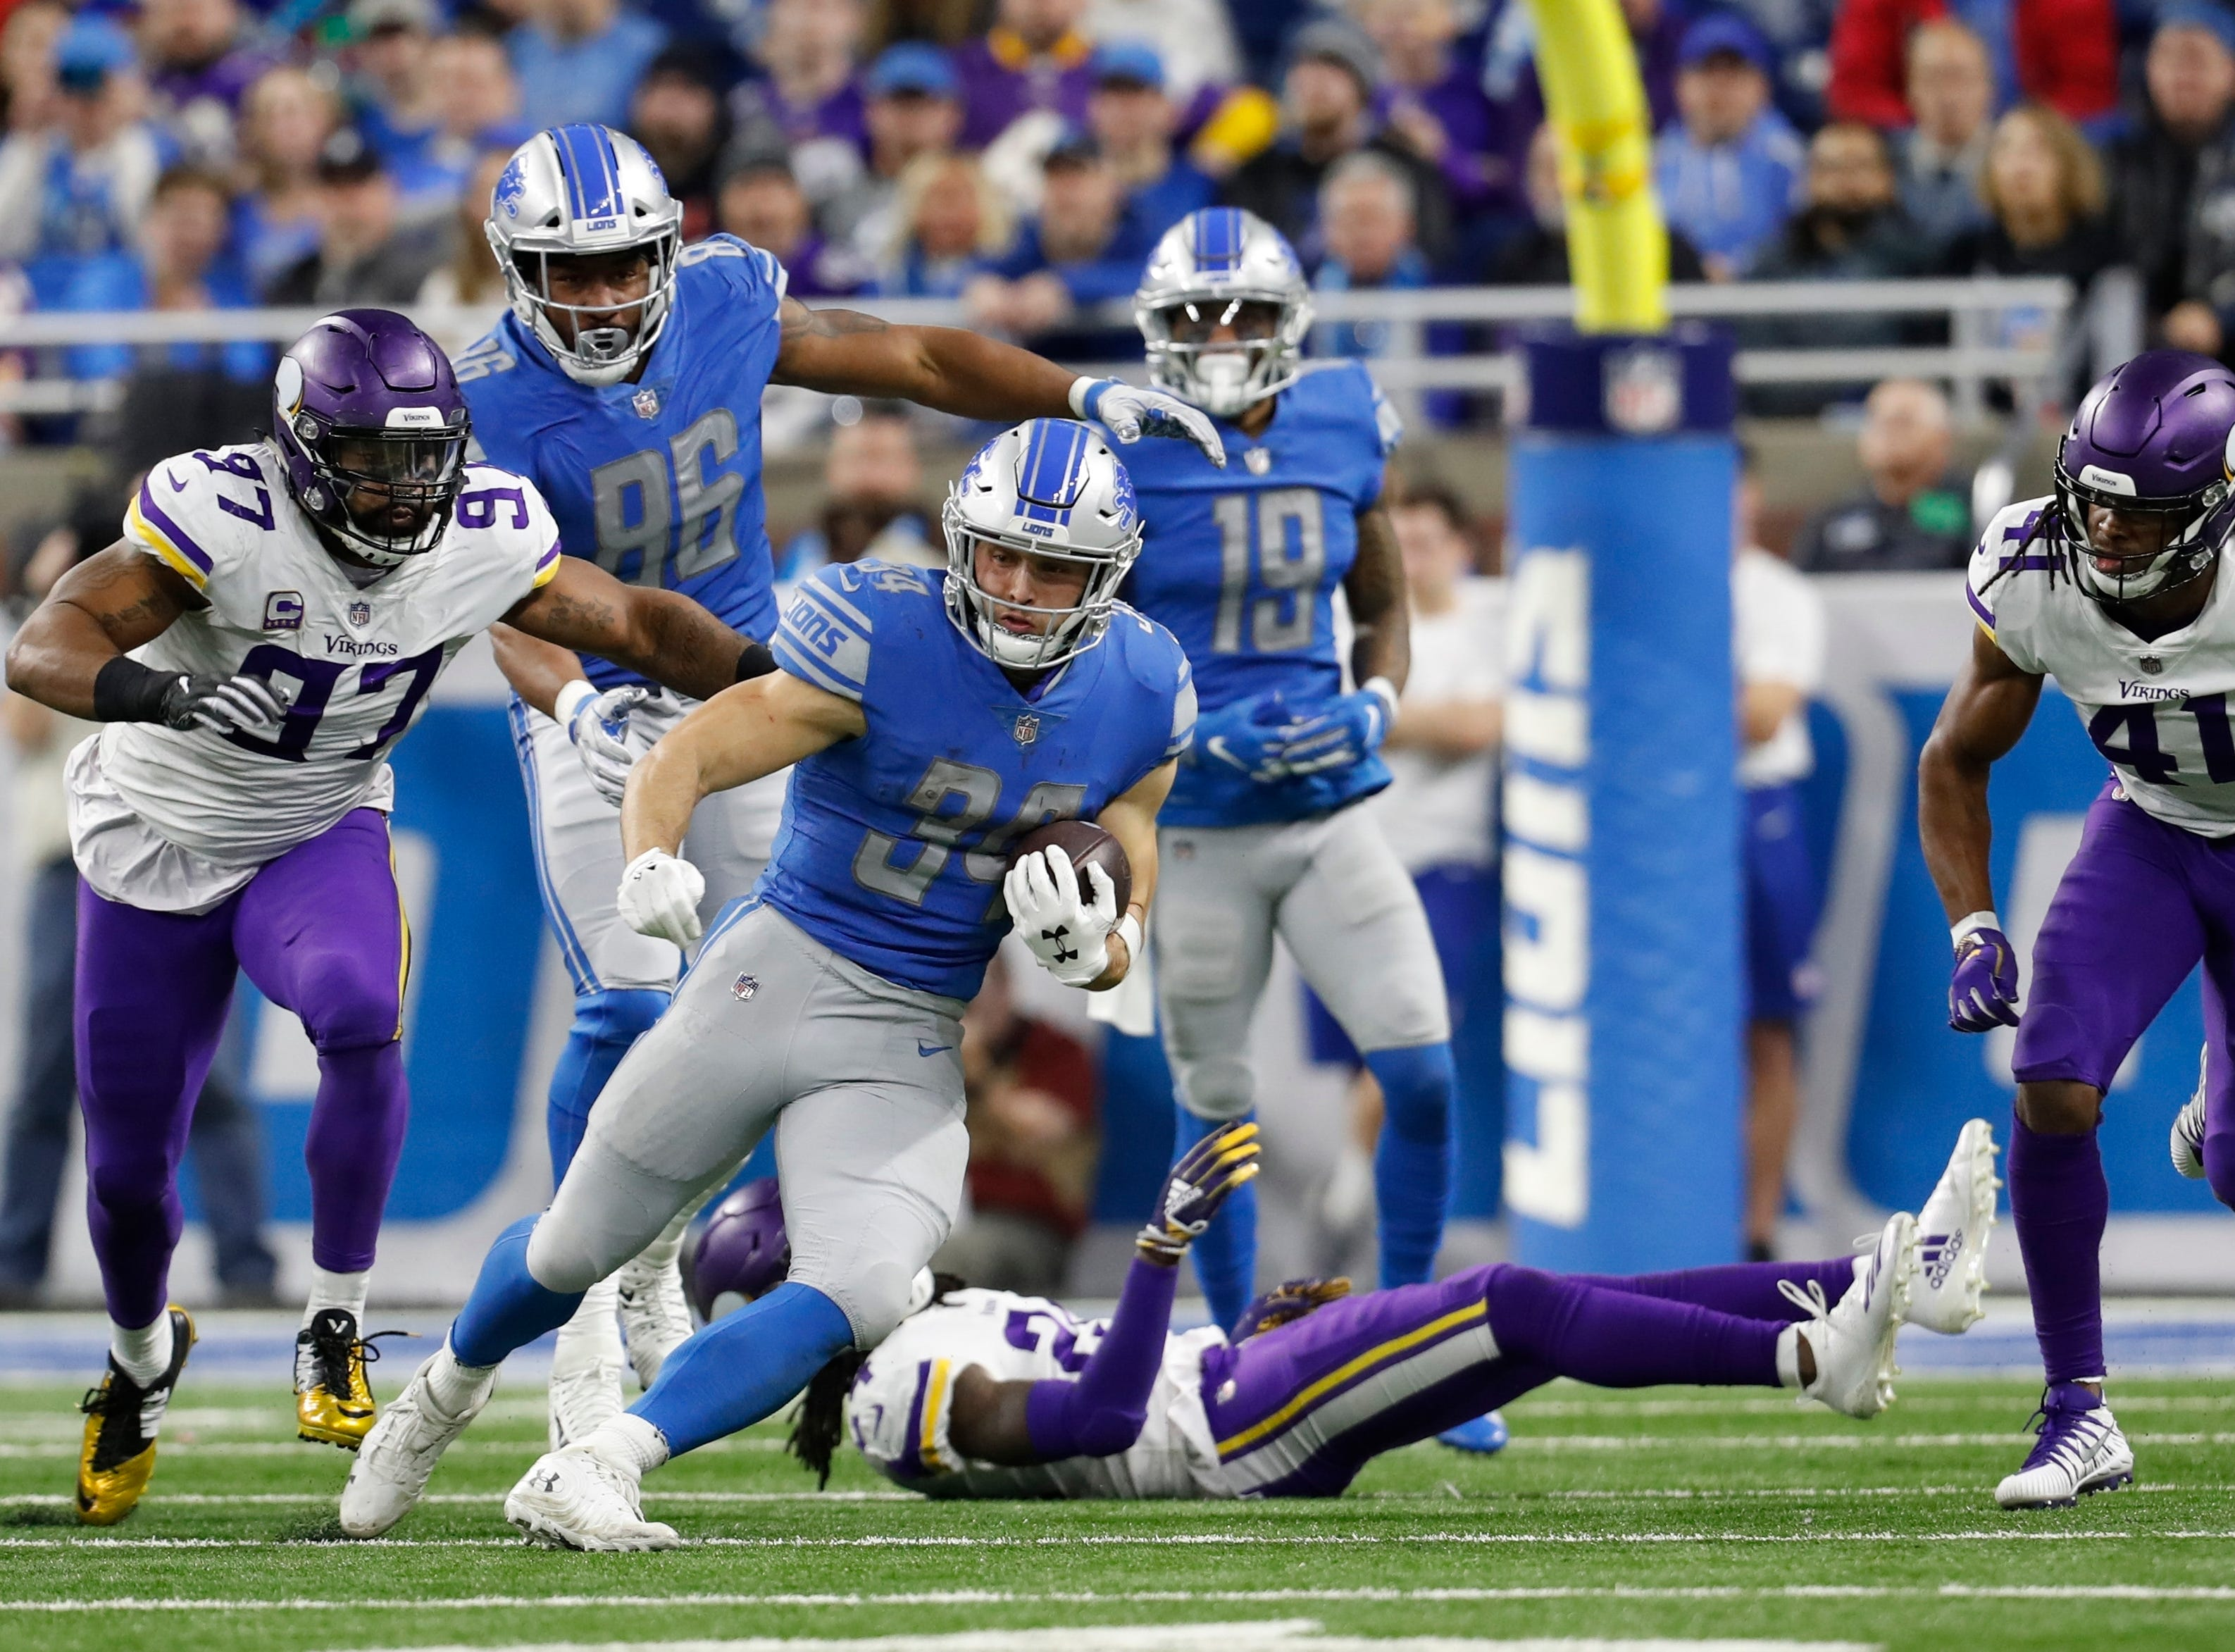 Detroit Lions running back Zach Zenner (34) rushes during the second half of an NFL football game against the Minnesota Vikings, Sunday, Dec. 23, 2018, in Detroit. (AP Photo/Rey Del Rio)